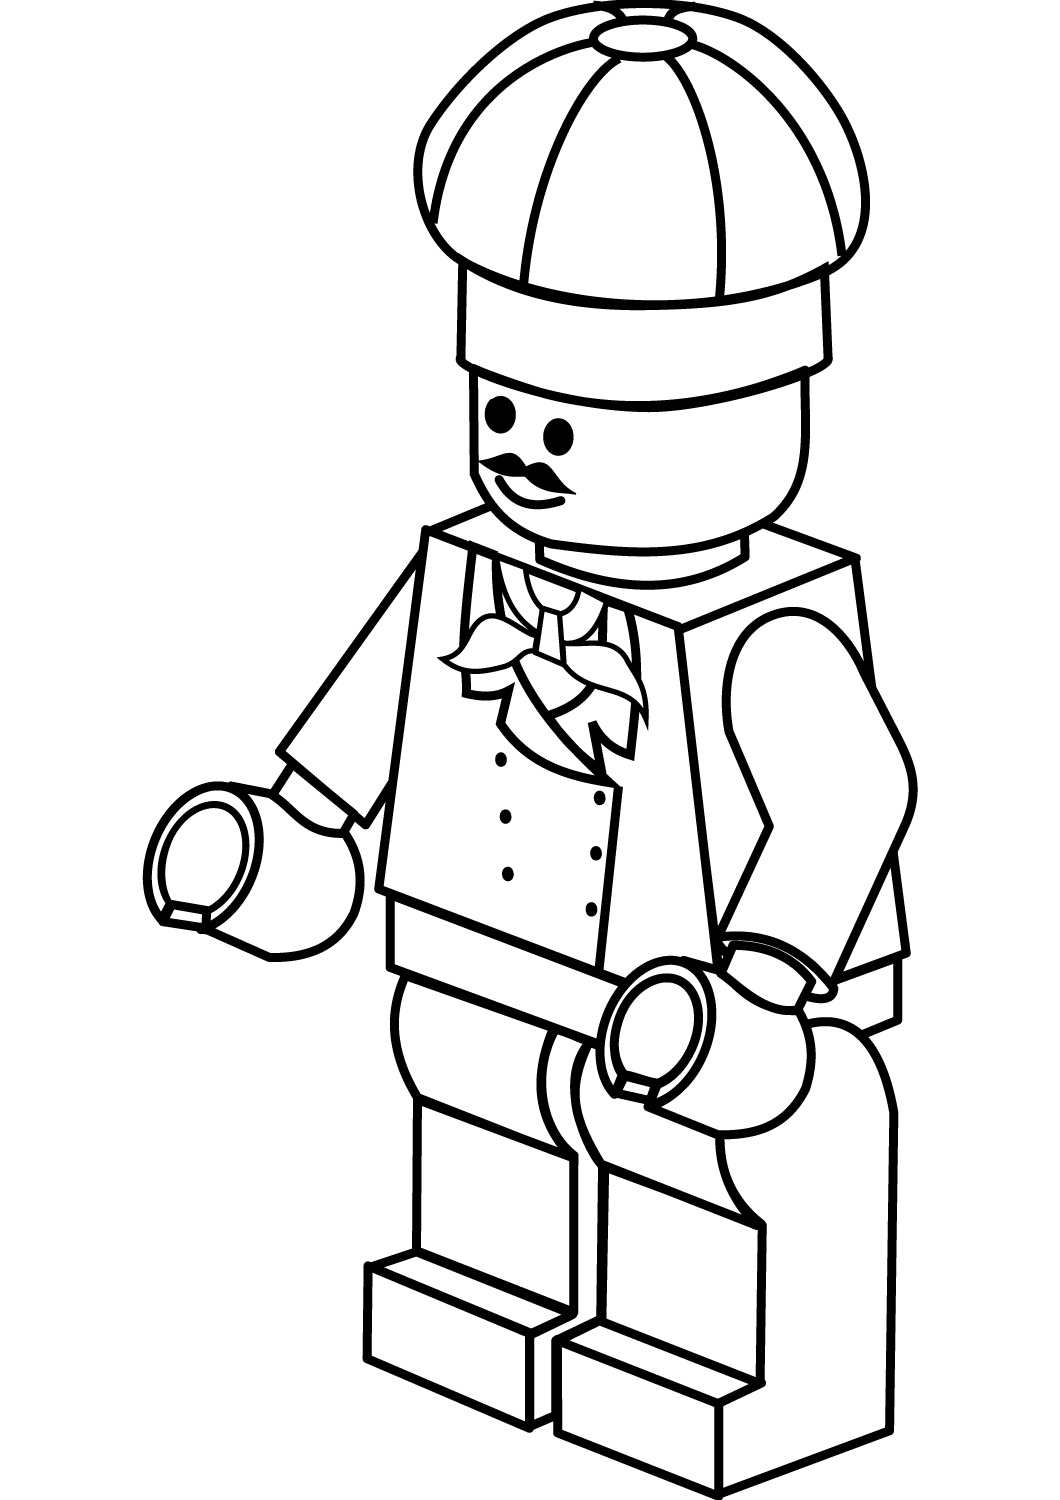 lego police officer coloring page lego policeman coloring page free printable coloring pages page police lego coloring officer